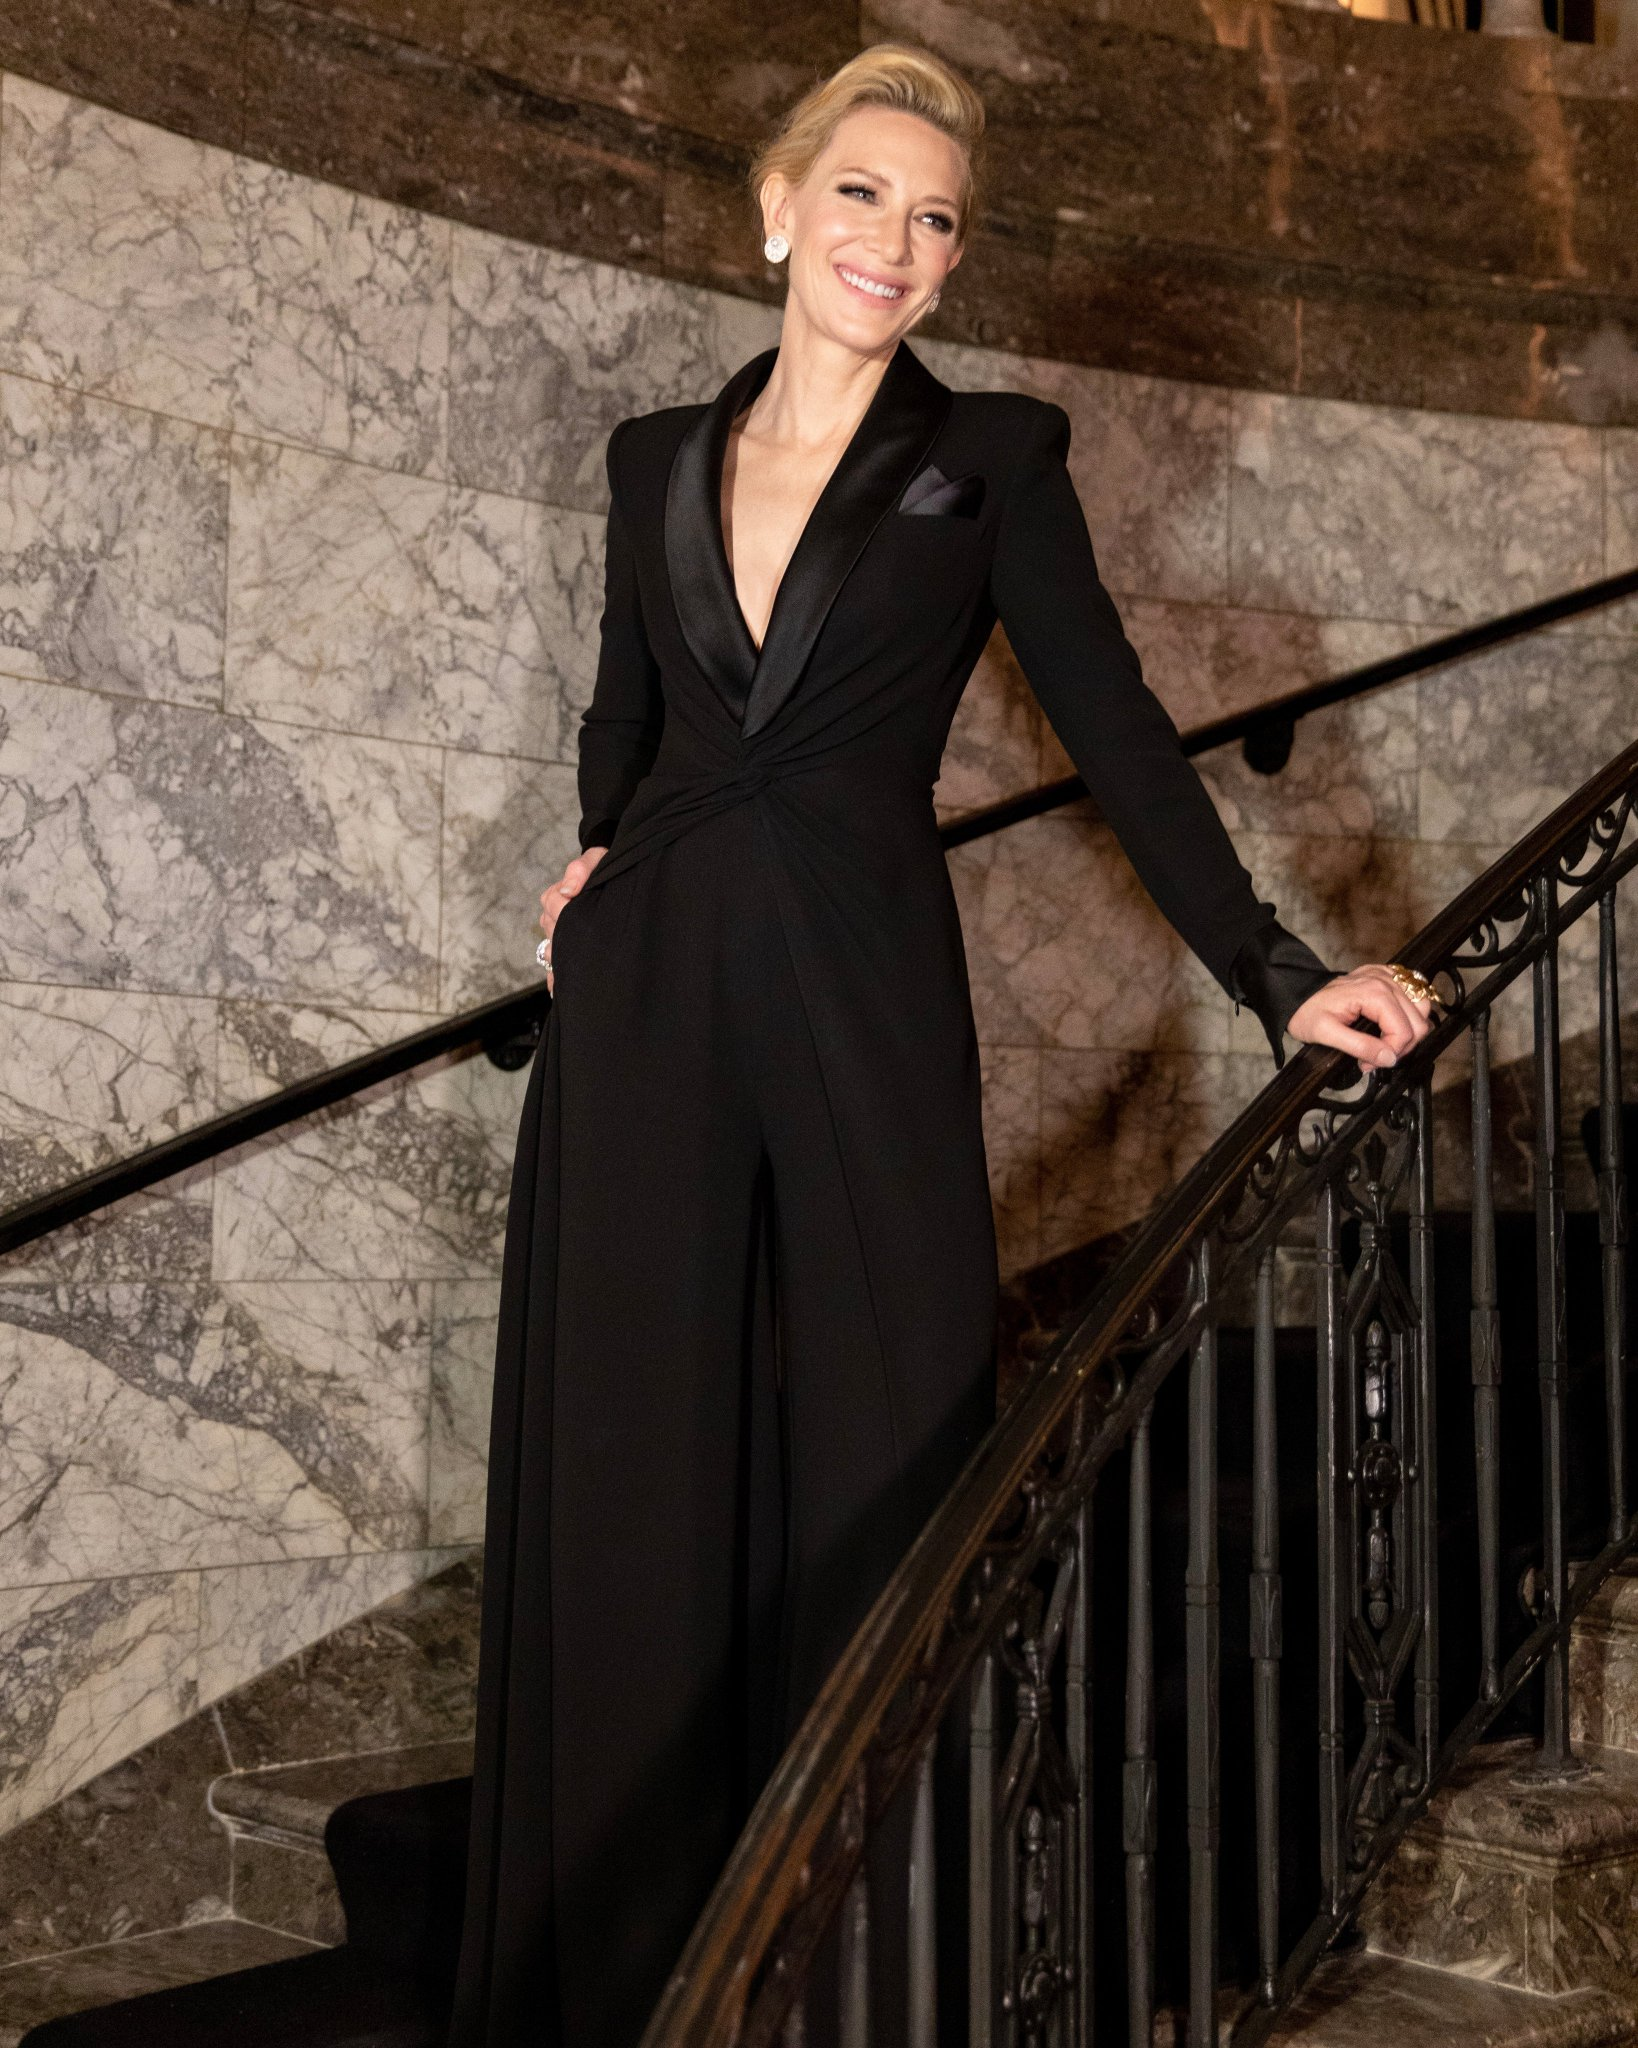 cate-blanchett-in-ralph-lauren-collection-@-ralph-lauren-fall-2019